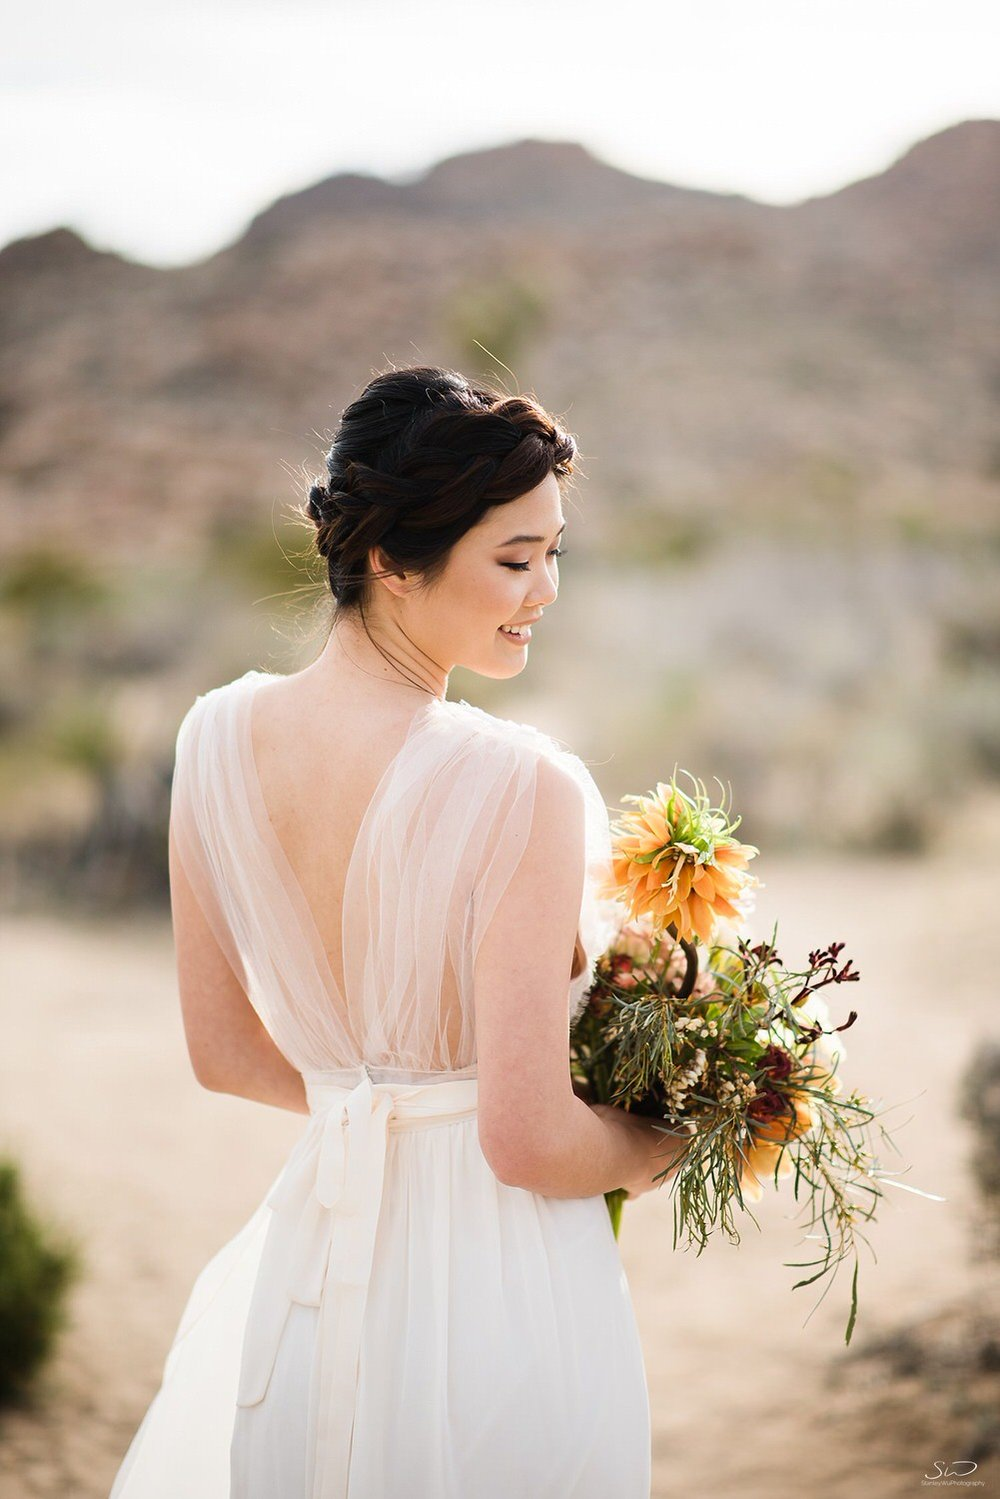 Bride with wedding bouquet in desert | Joshua Tree Desert Wedding & Engagement Inspiration